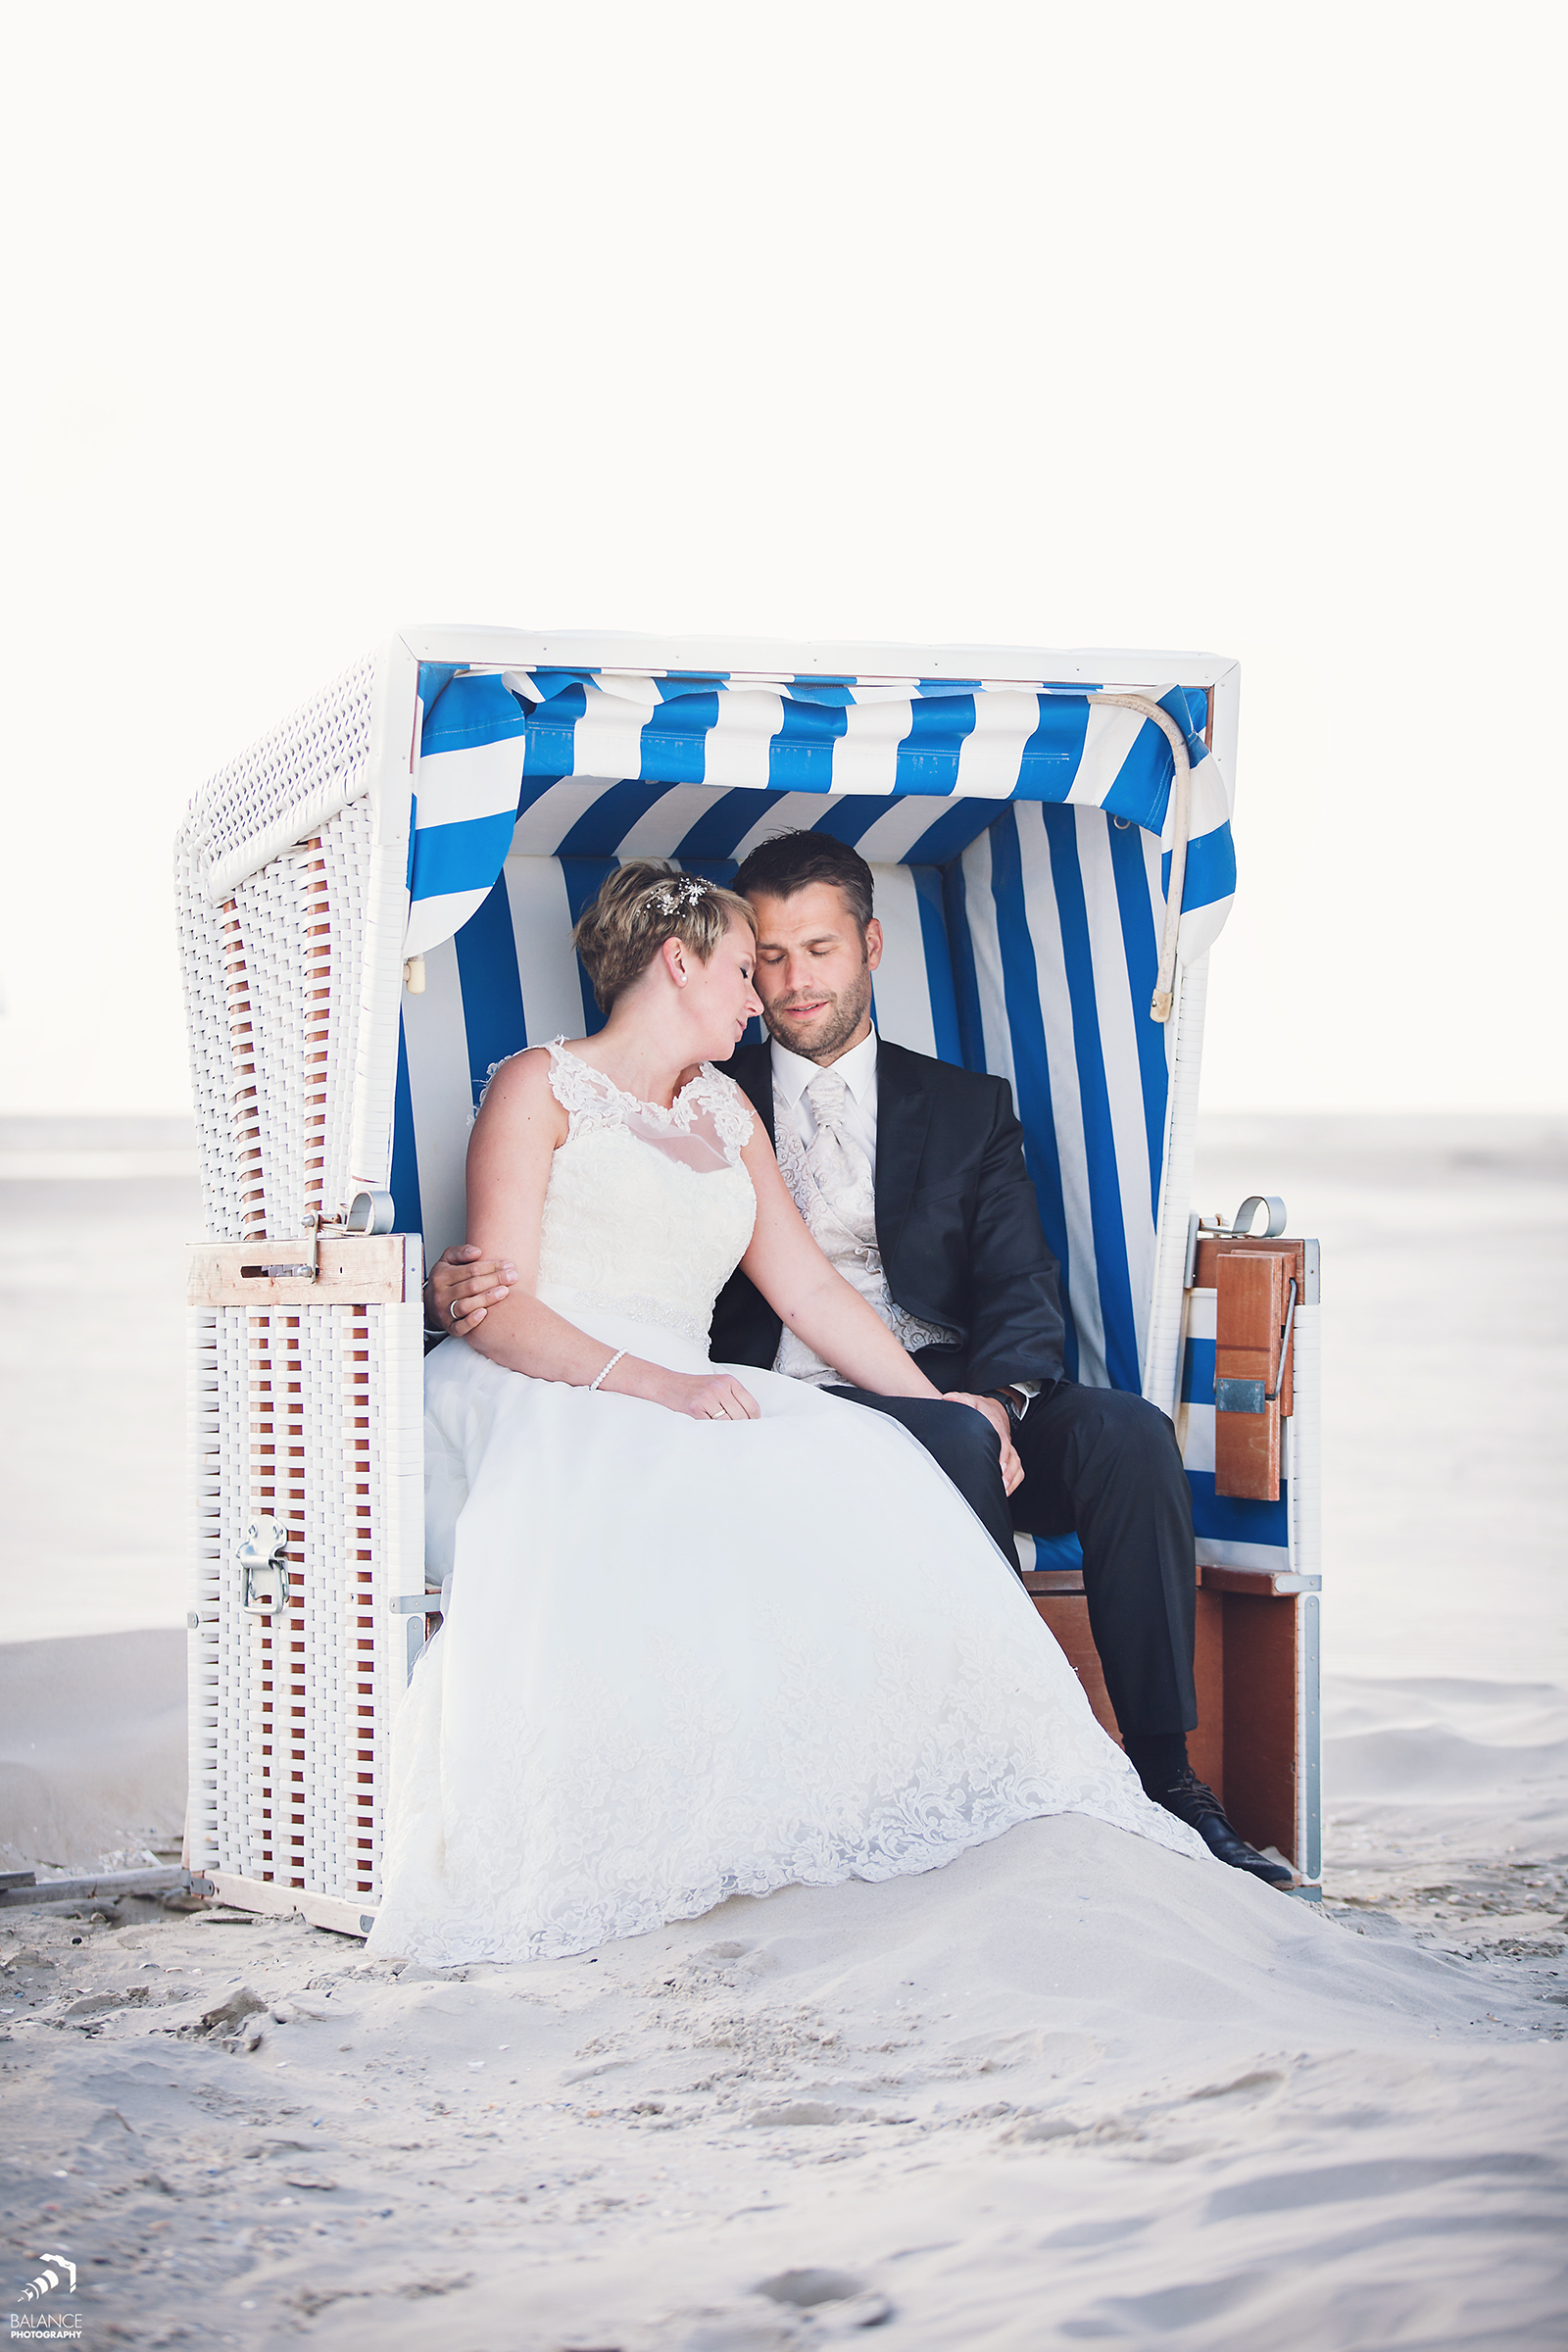 Heiraten Sankt Peter Ording